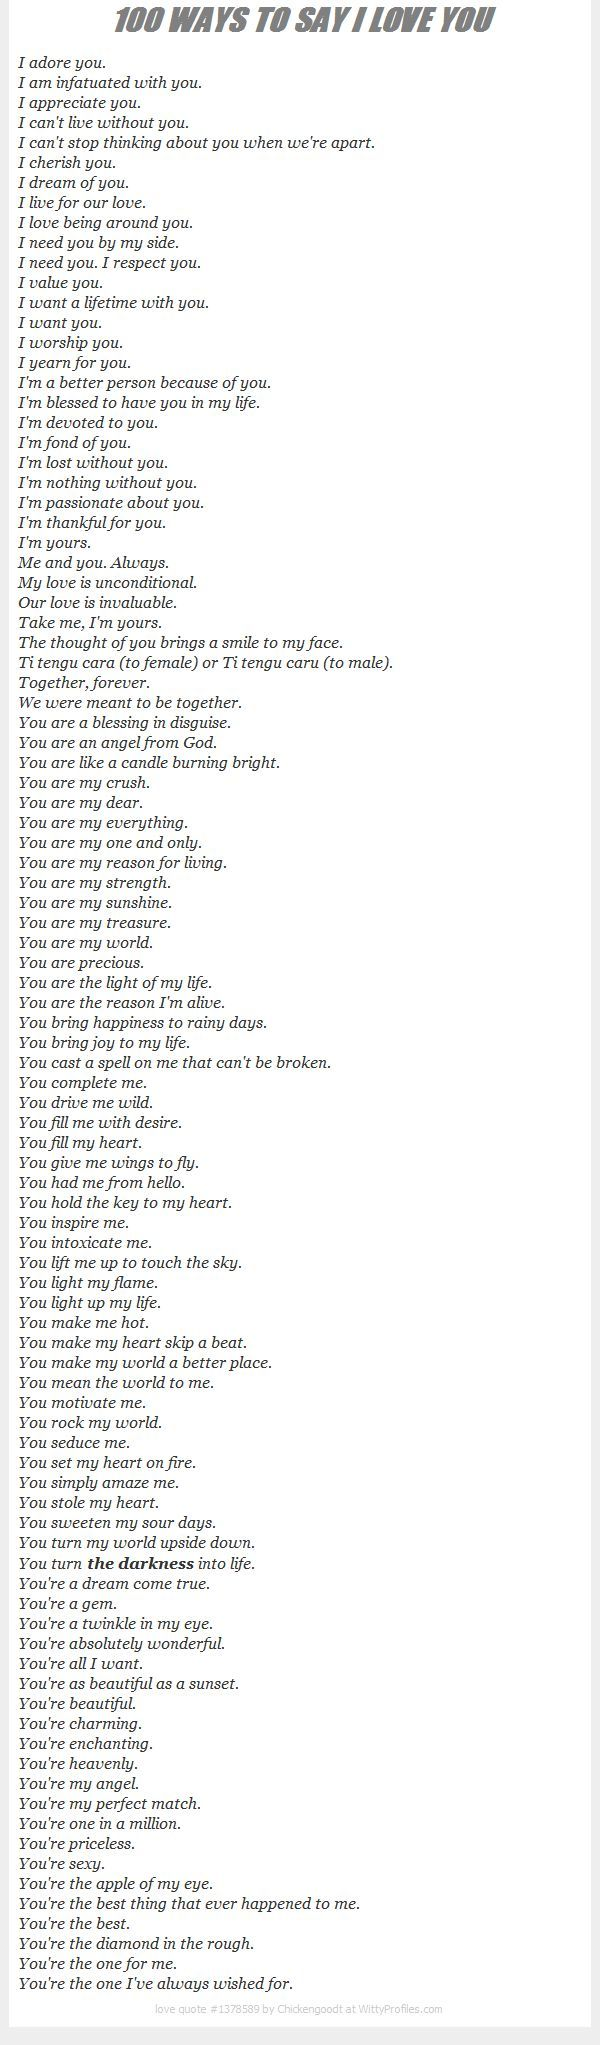 100 ways to say i love you relationships romance and 100 ways to say i love you hexwebz Gallery